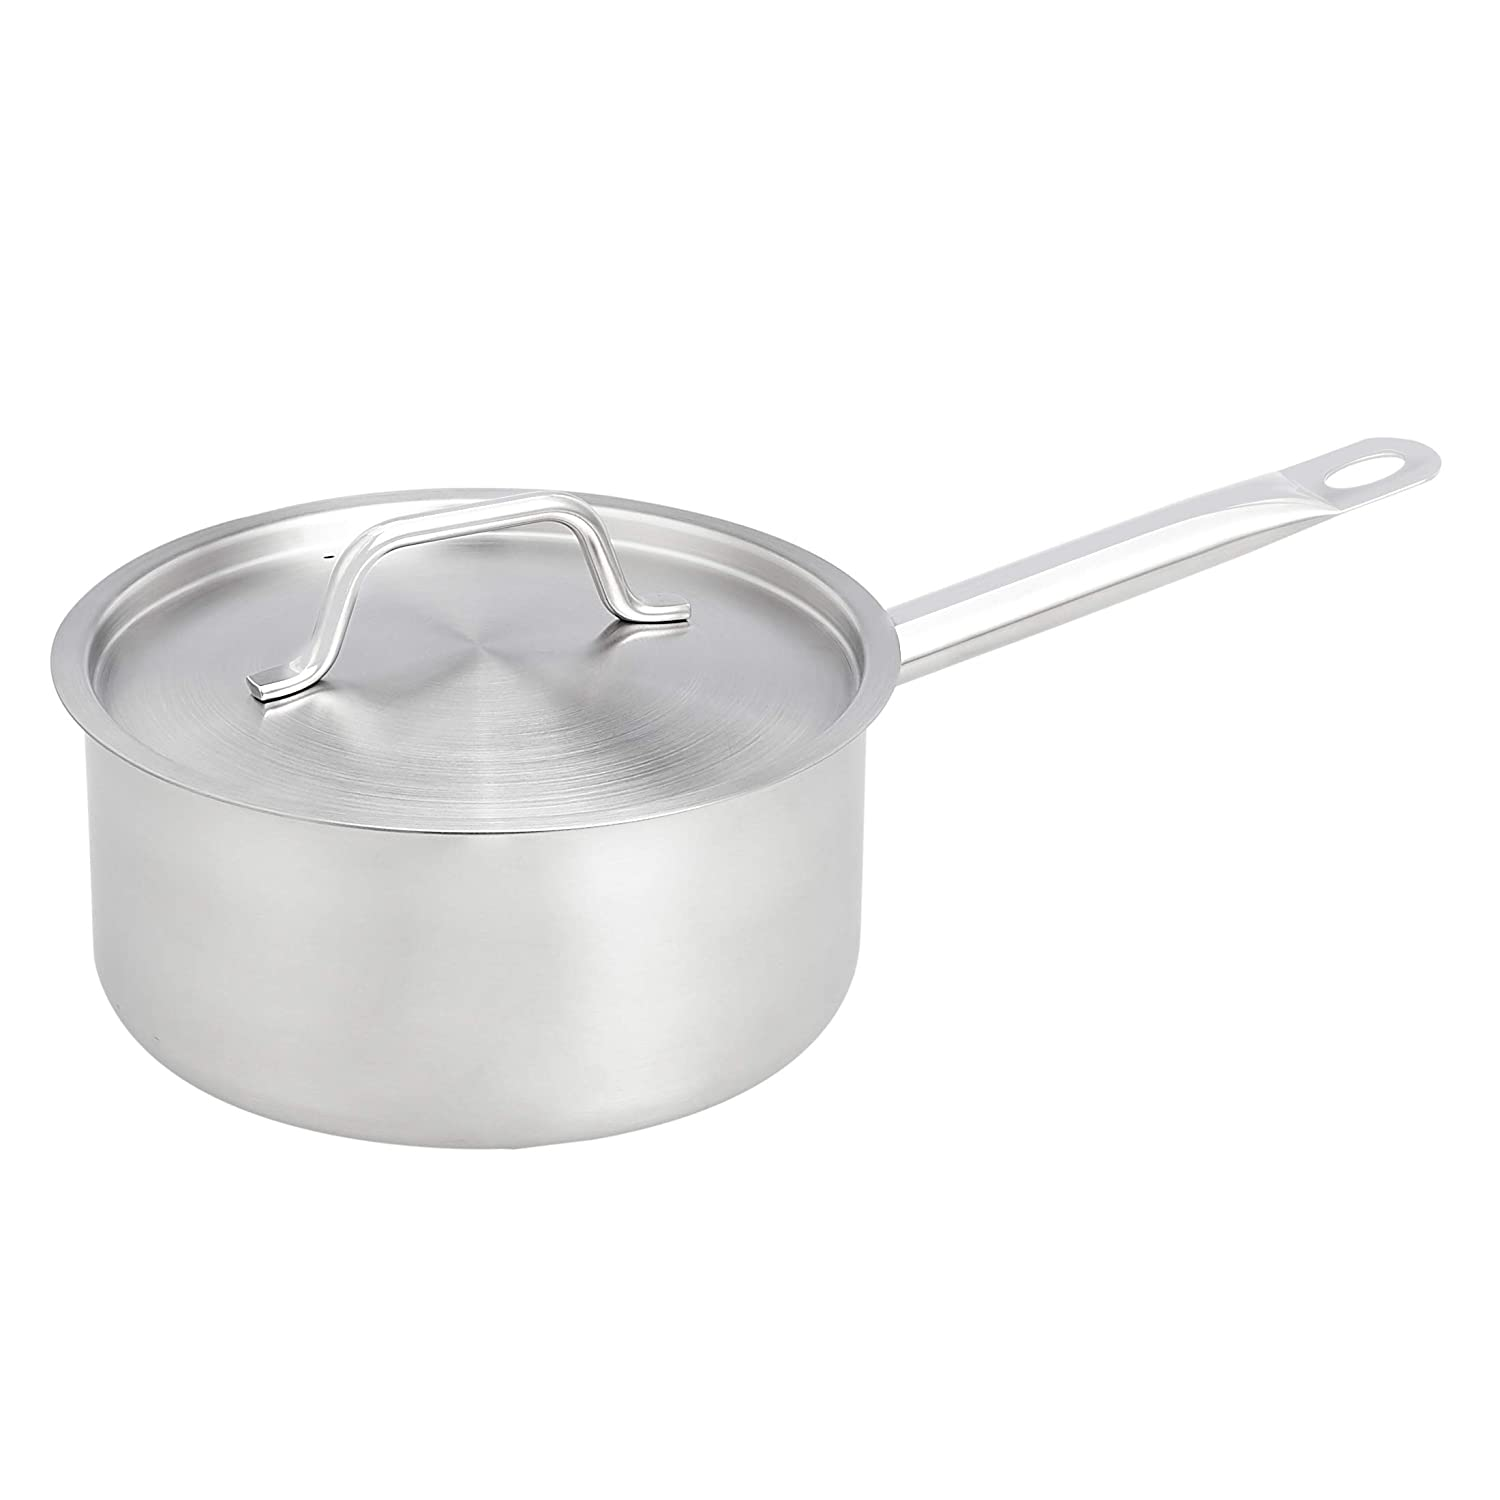 AmazonCommercial 3 Qt. Stainless Steel Aluminum-Clad Straight Sided Sauce Pan with Cover